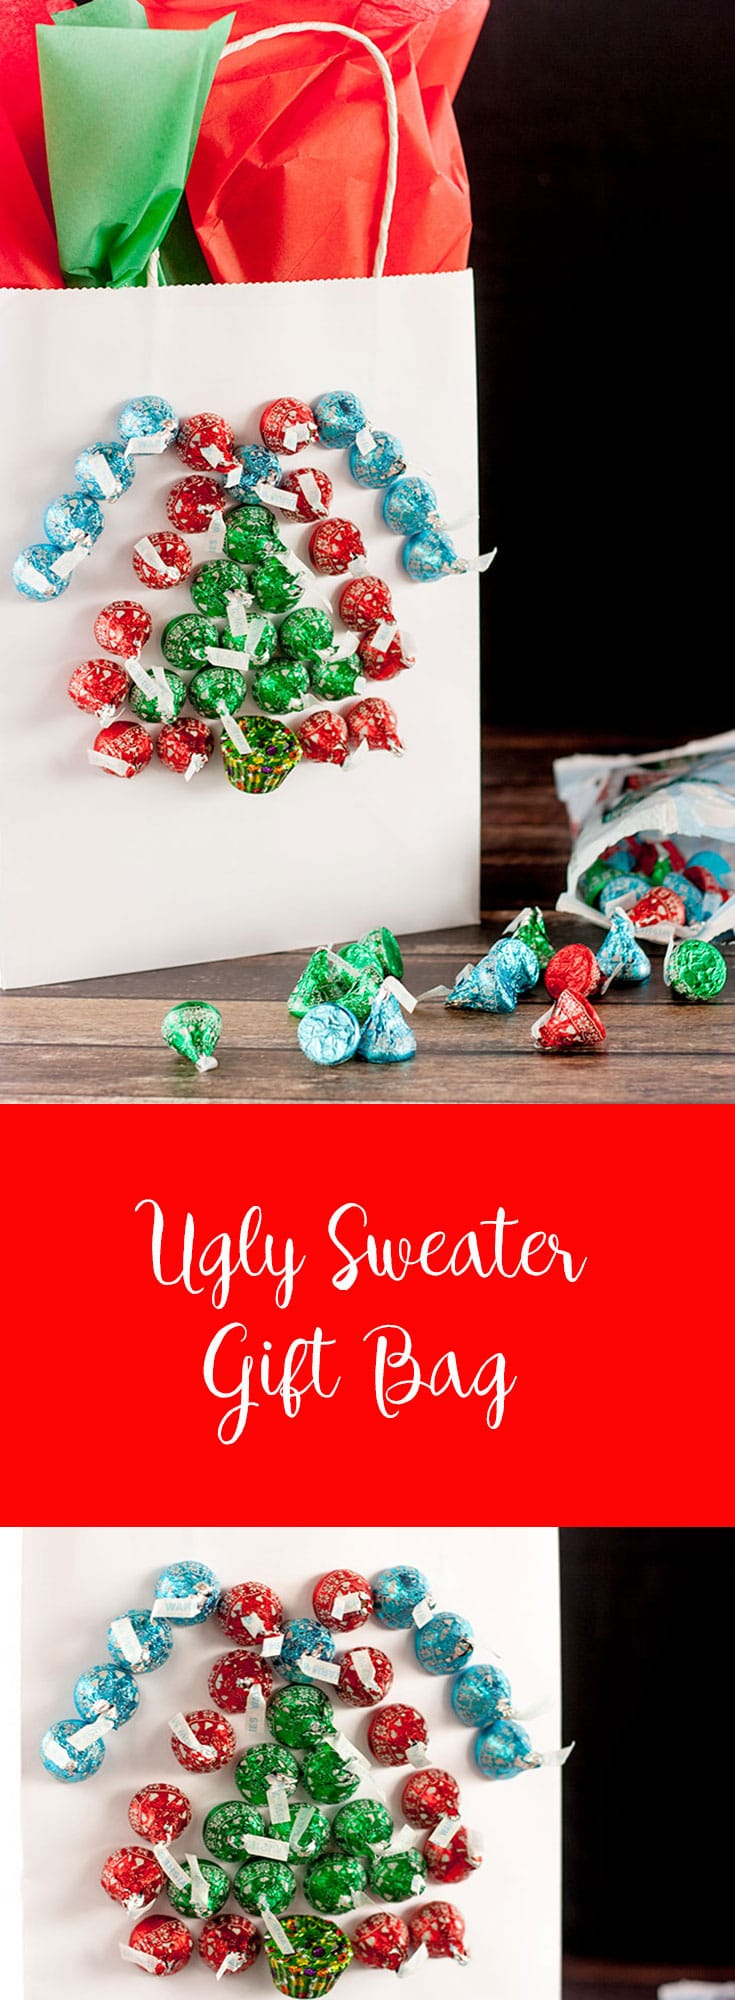 What better way to celebrate Ugly Sweater Day than with an Ugly Sweater Gift Bag and Chocolates!